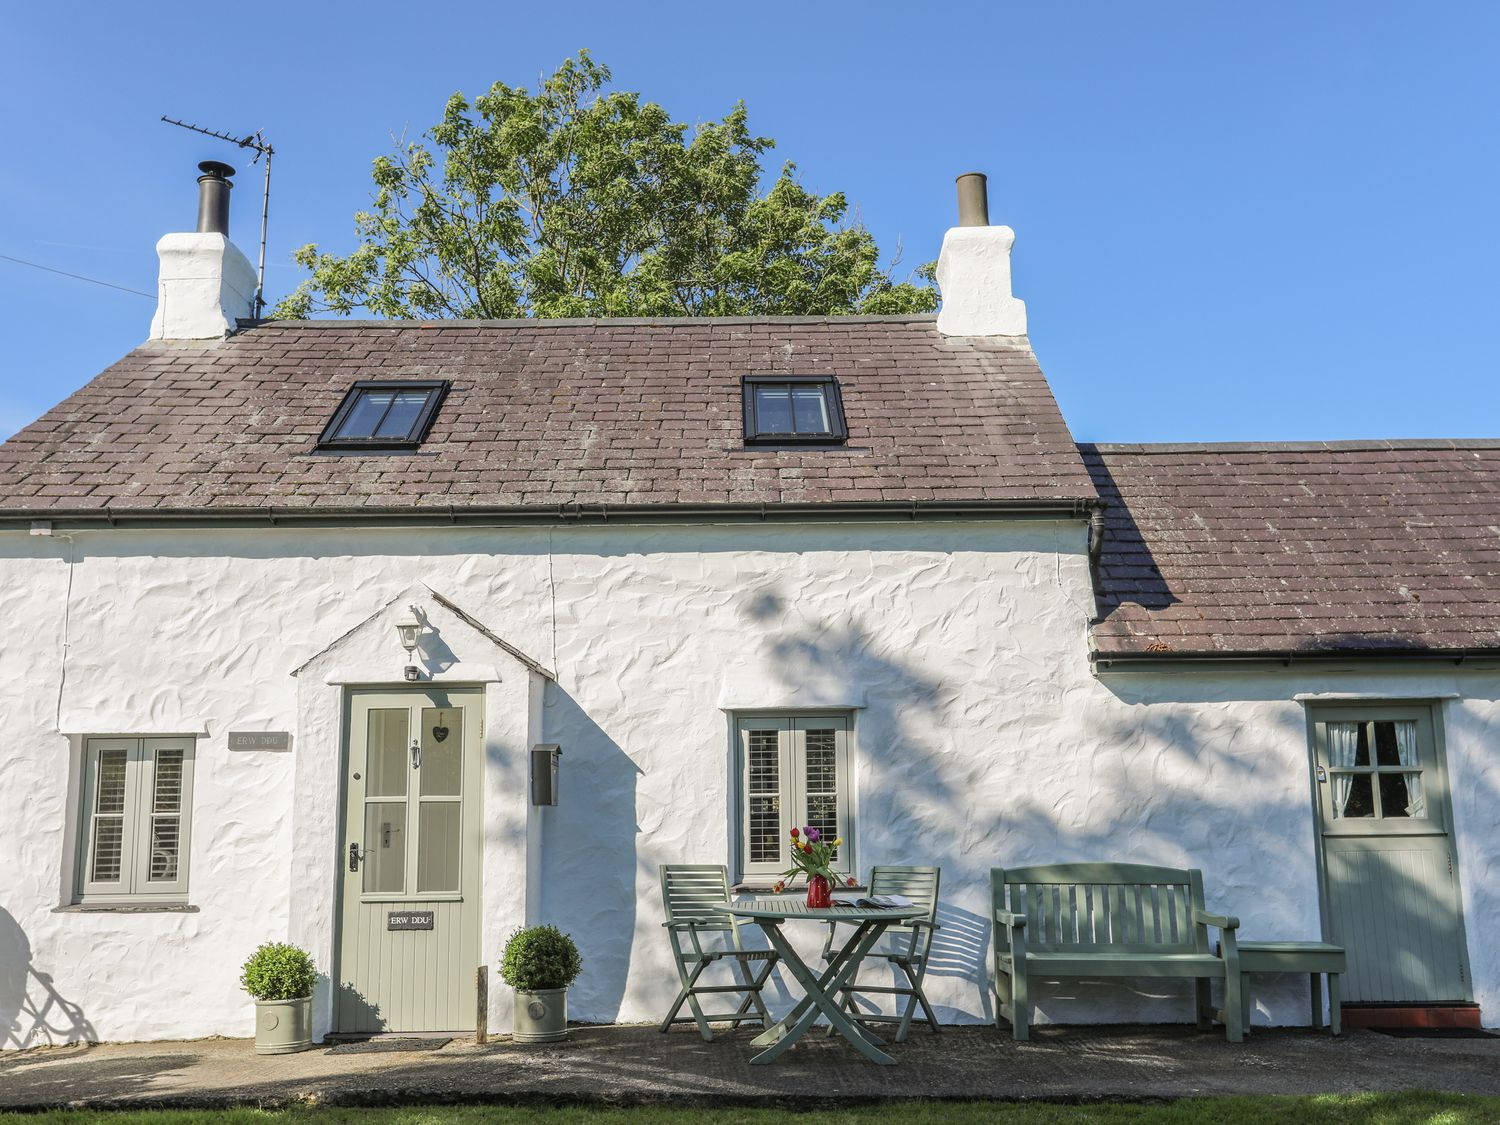 Erw Ddu - Tyn y Gongl in Tyn y Gongl - sleeps 4 people